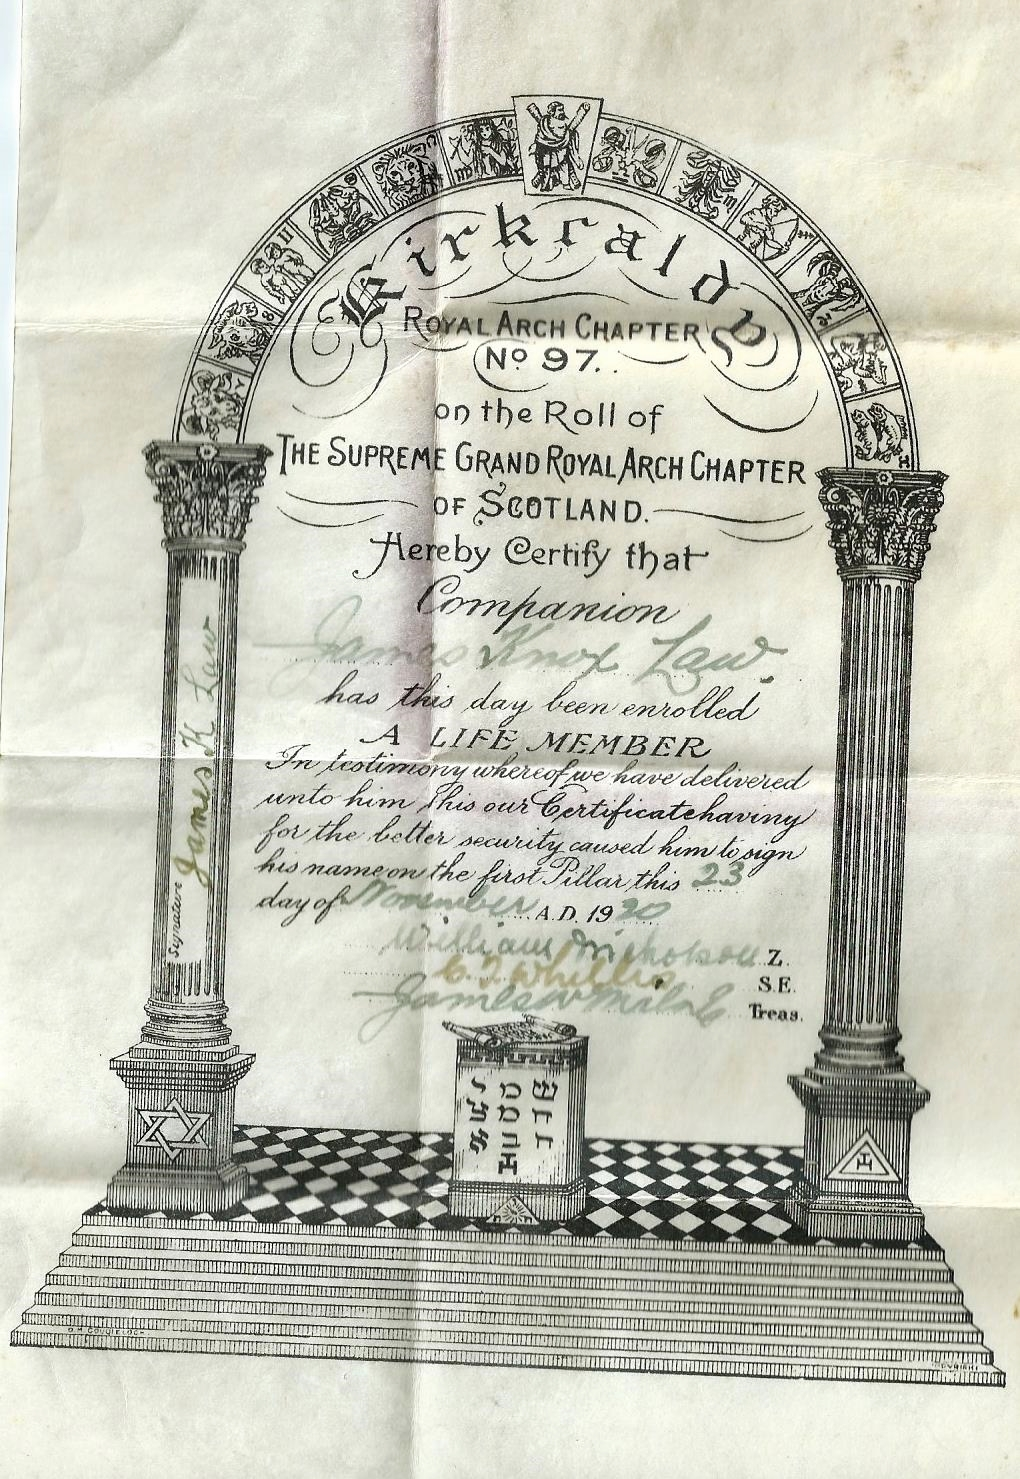 GF is James Knox  Law  as seen on his life membership certificate of the Kirkcaldy Masons, Royal Arch Chapter No. 97 in 1920. Further evidence of the name change back to Law